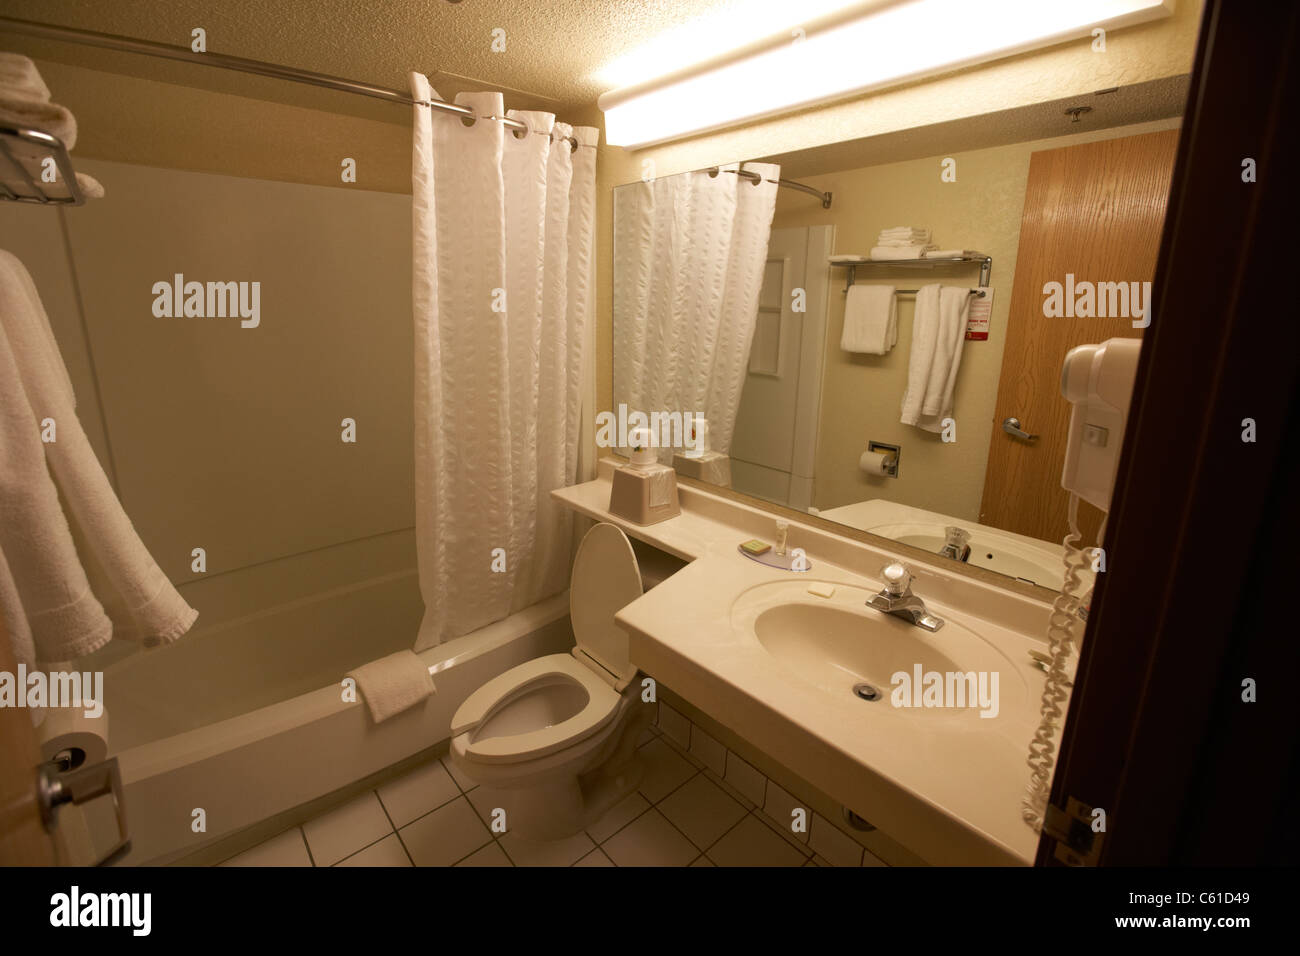 Cheap hotel motel bathroom in the usa stock photo royalty for Cheap bathroom suites